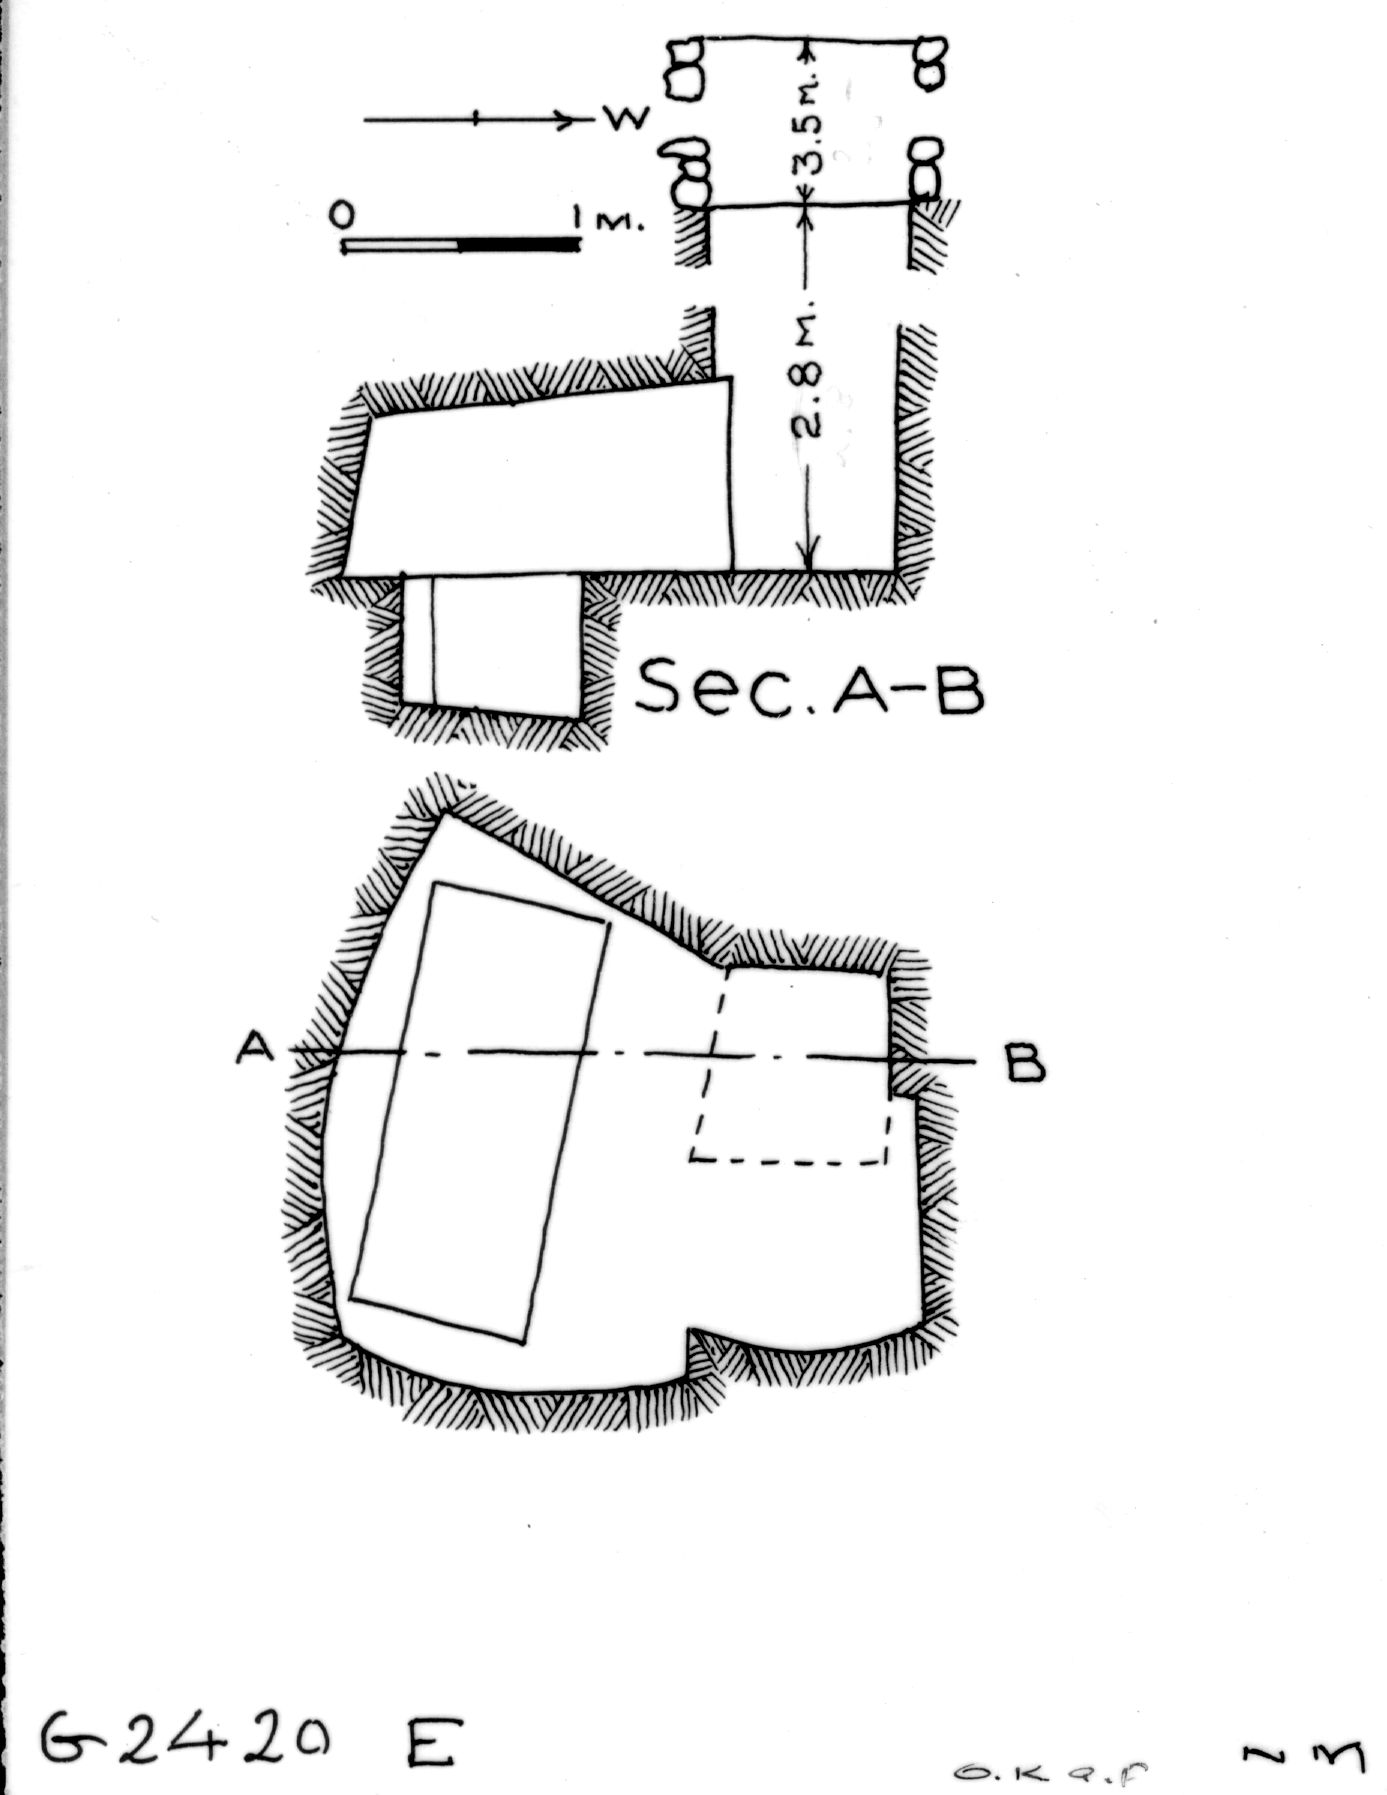 Maps and plans: G 2420, Shaft E